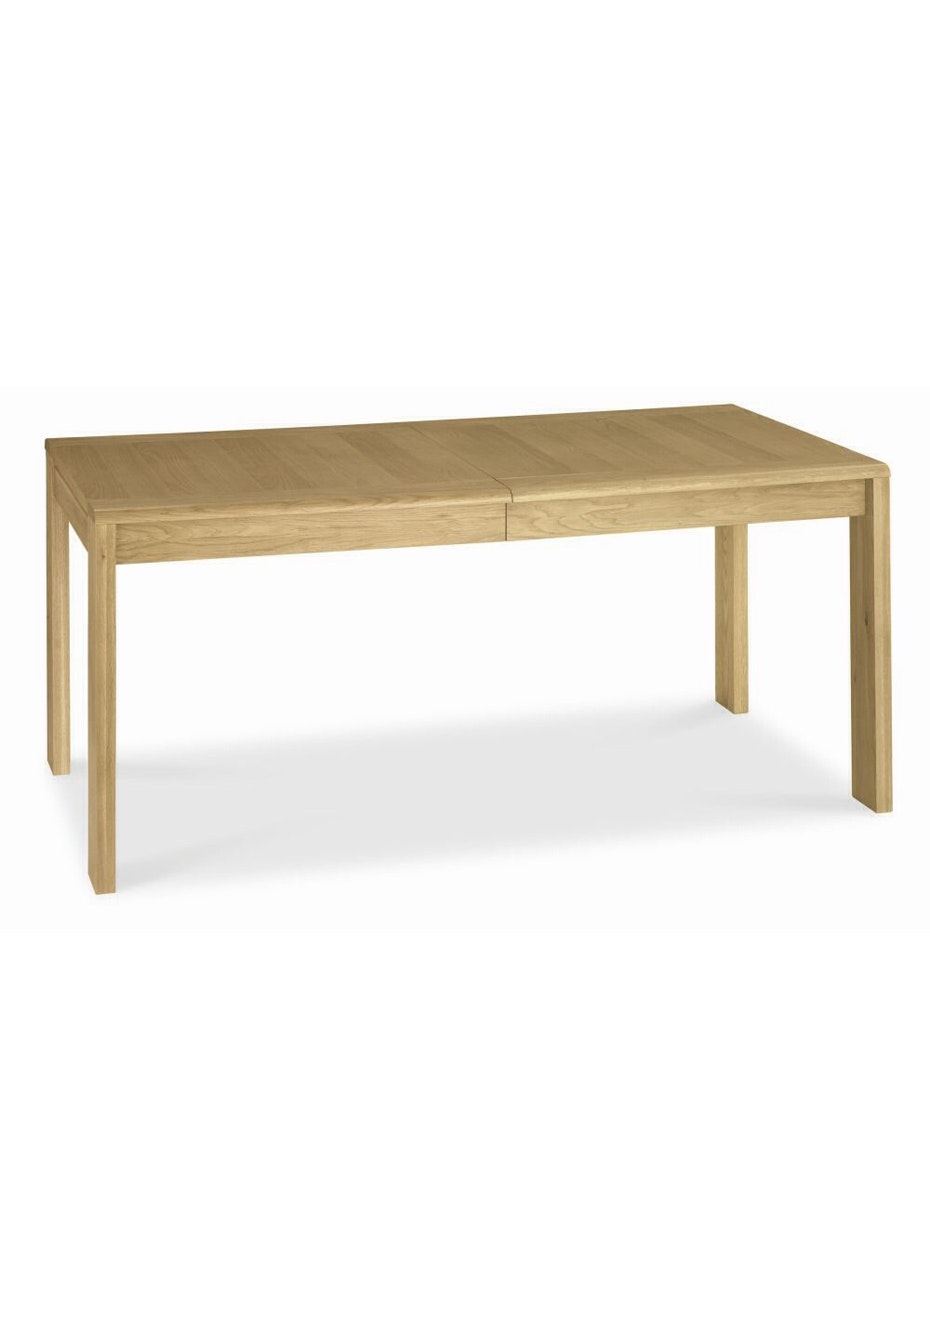 Furniture By Design - Casa Oak Extension Table- Light Oak